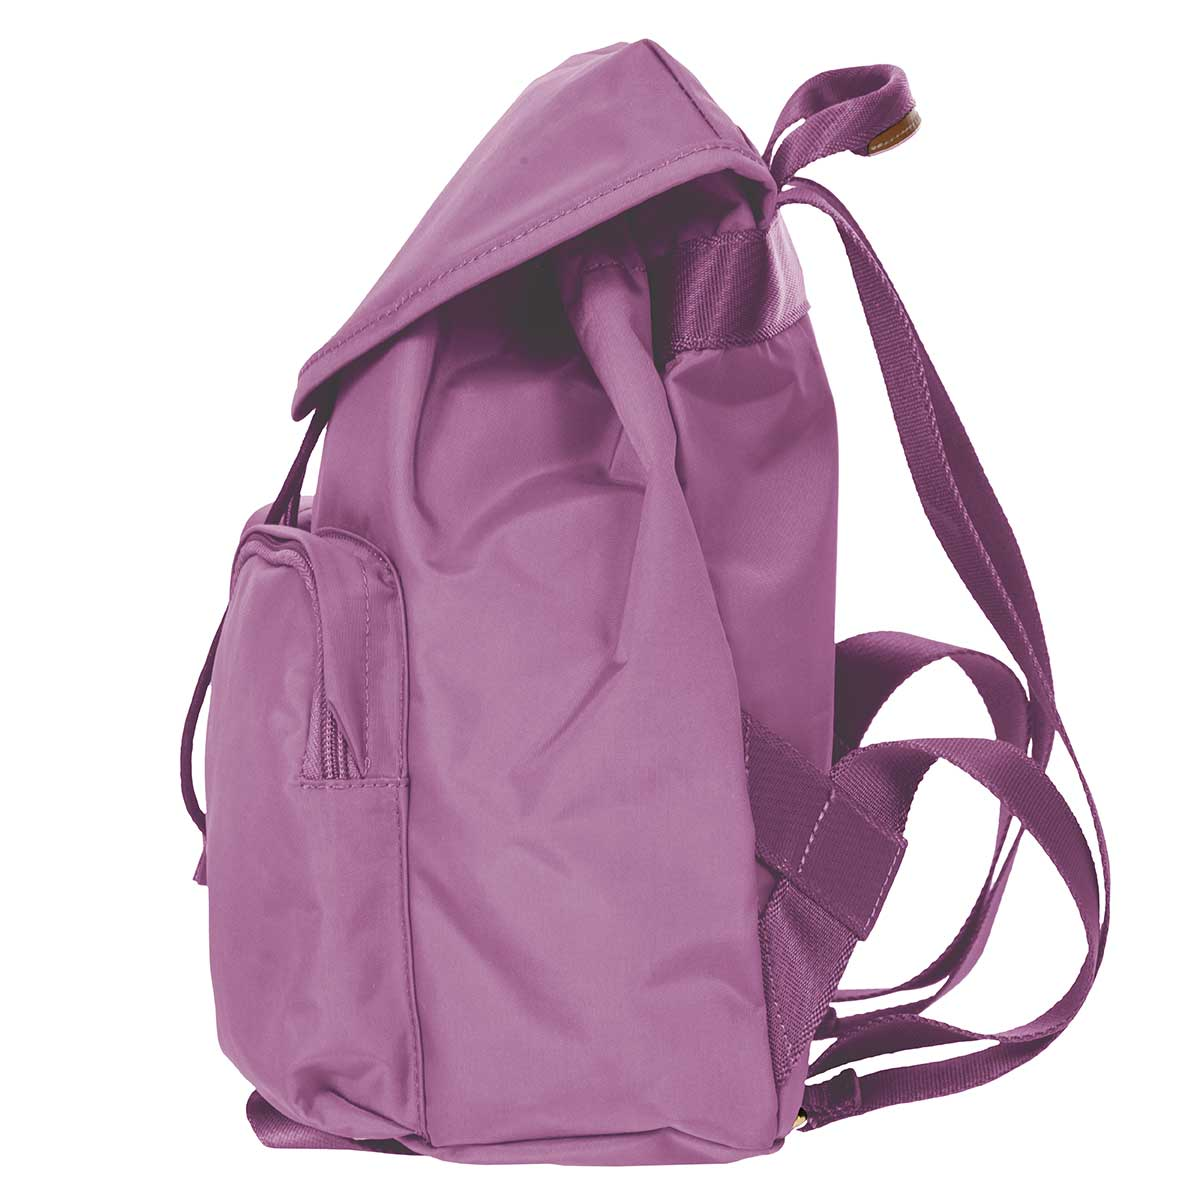 X-Bag City Backpack - Wisteria | BRIC'S Travel Bags